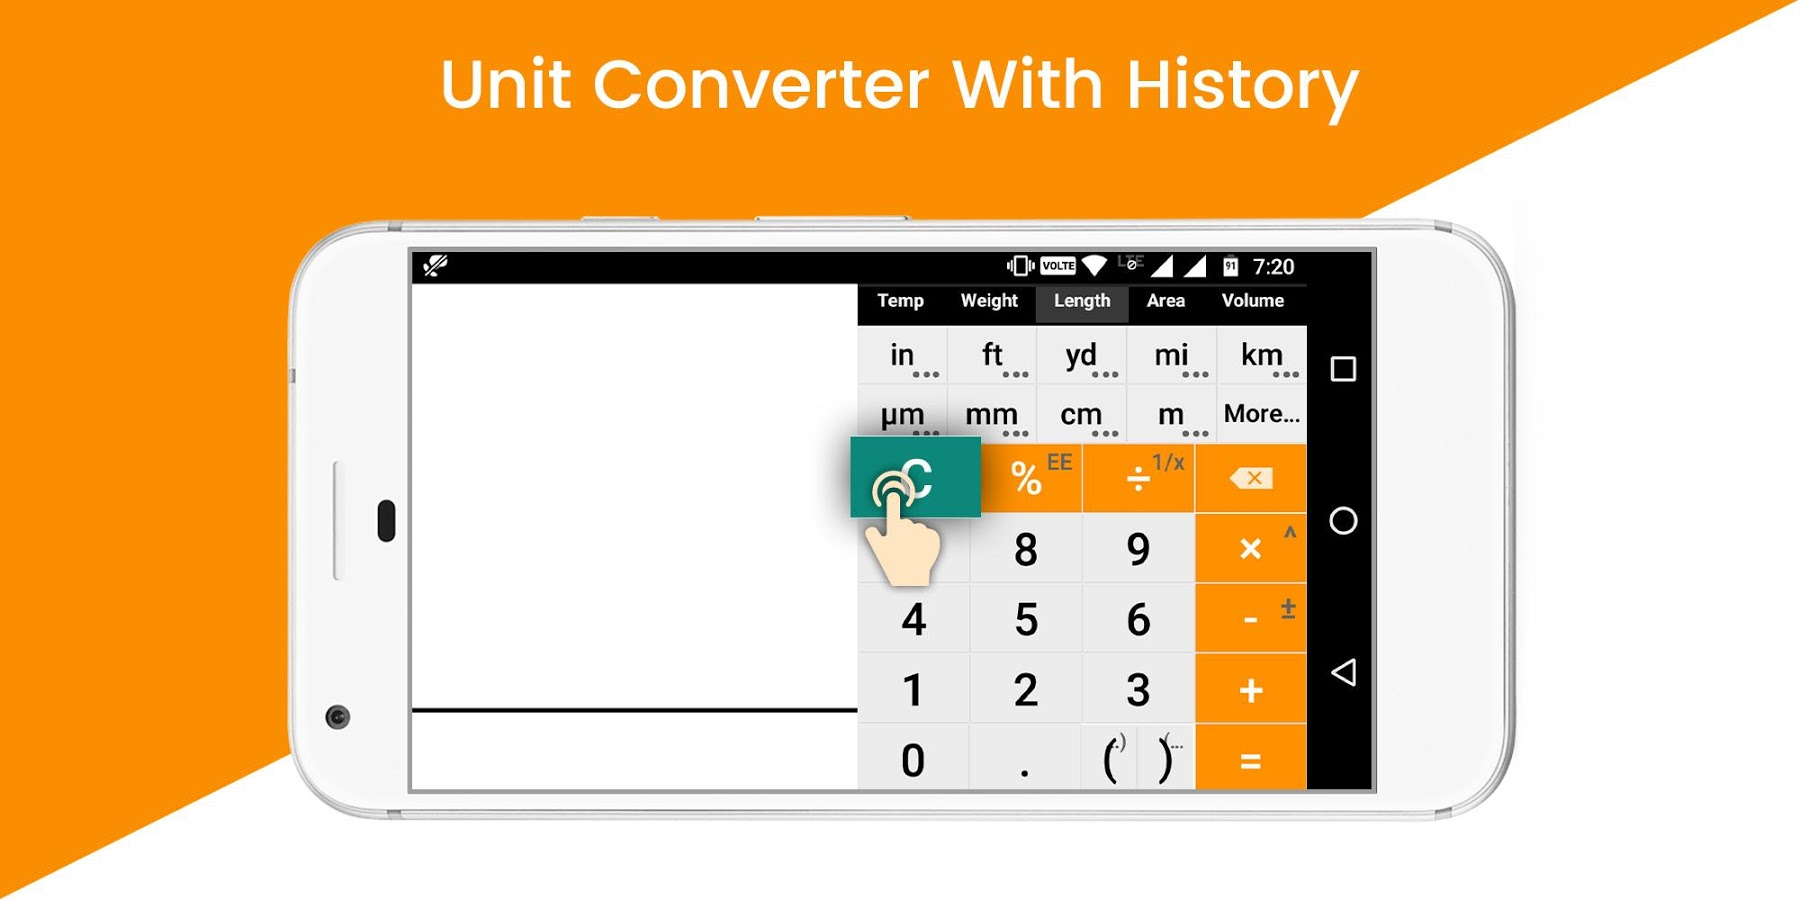 All In One Converter  Unit Converter 1.4 Apk Download for Vikram Samvat Date Converter